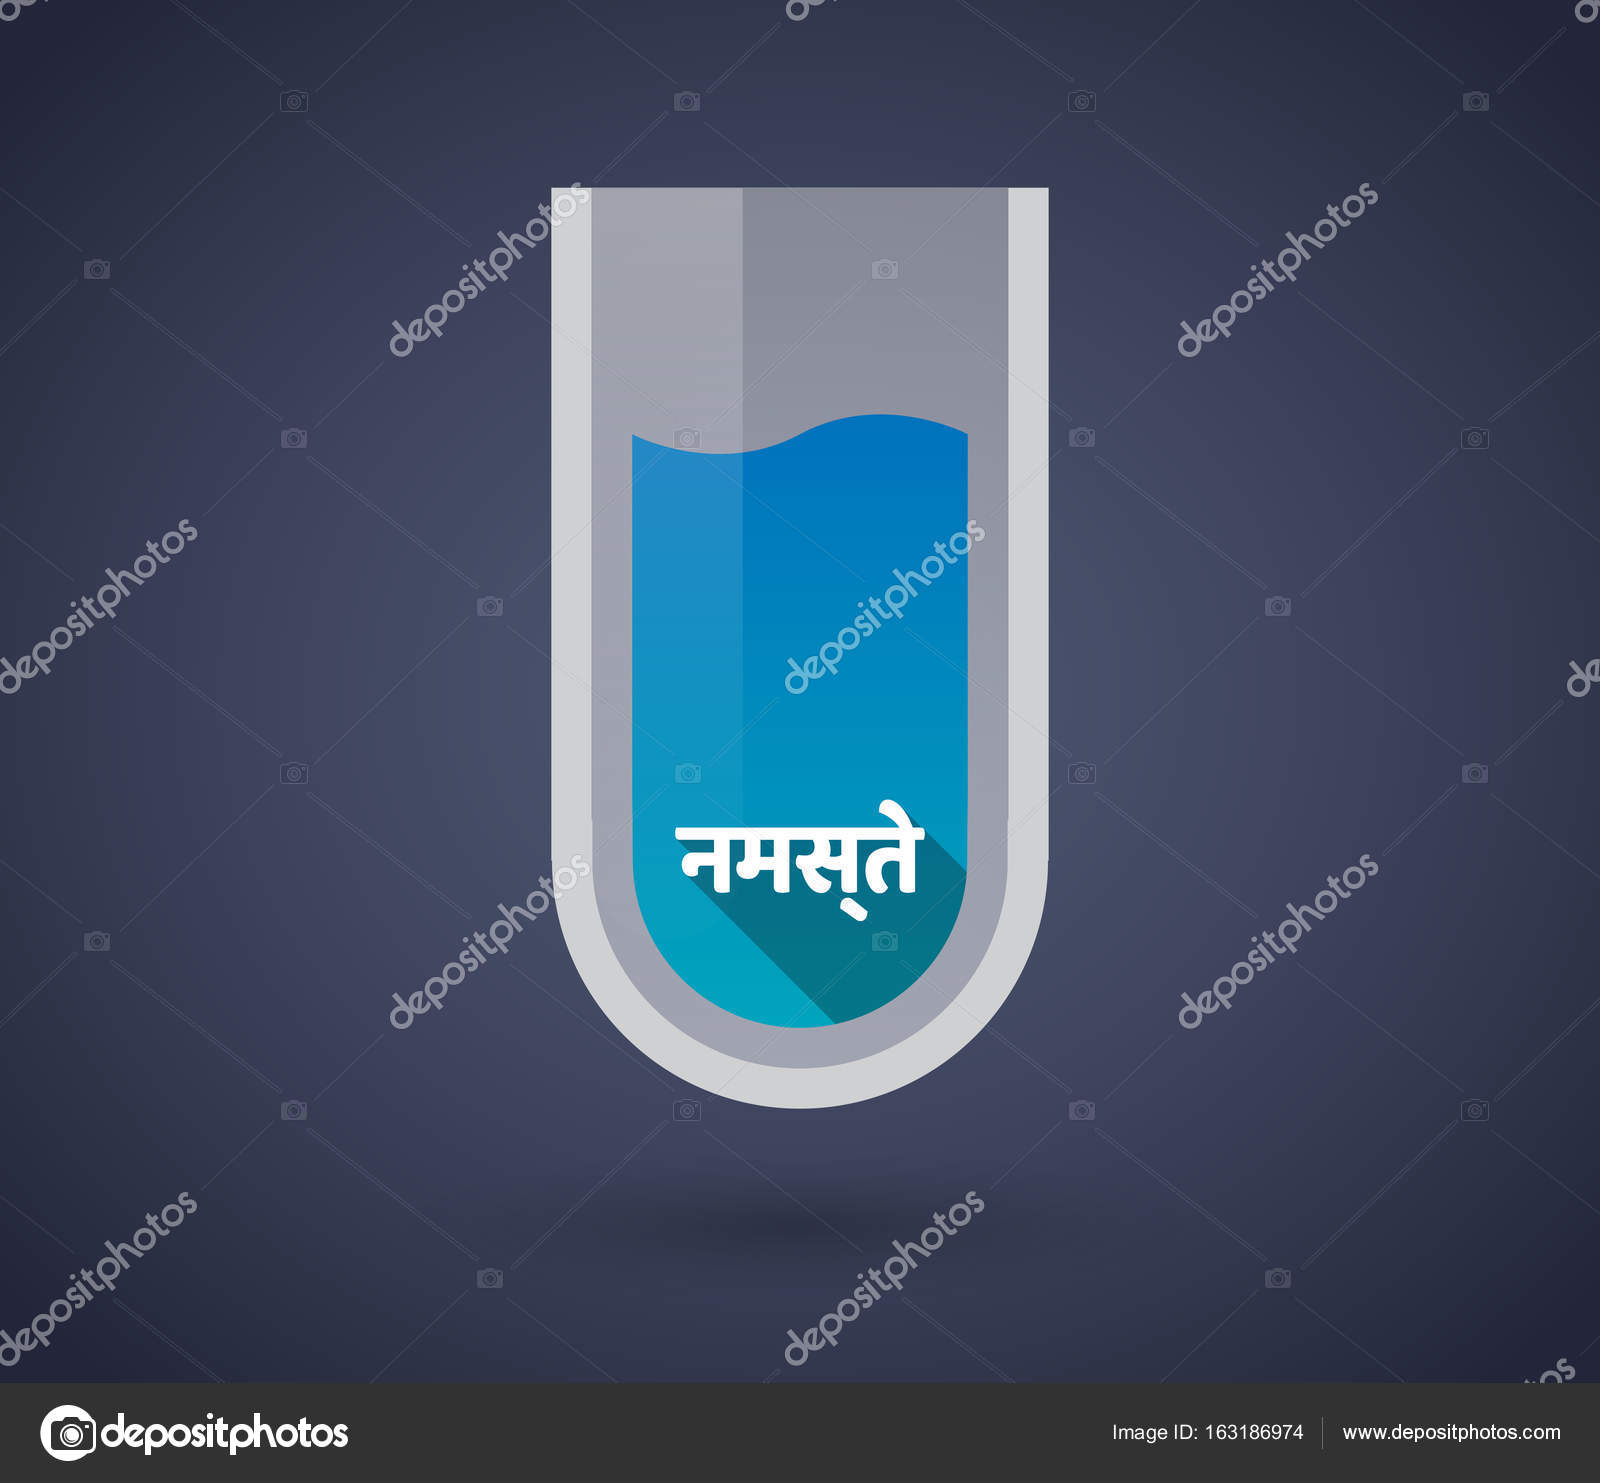 Chemical test tube with the text Hello in the hindi language